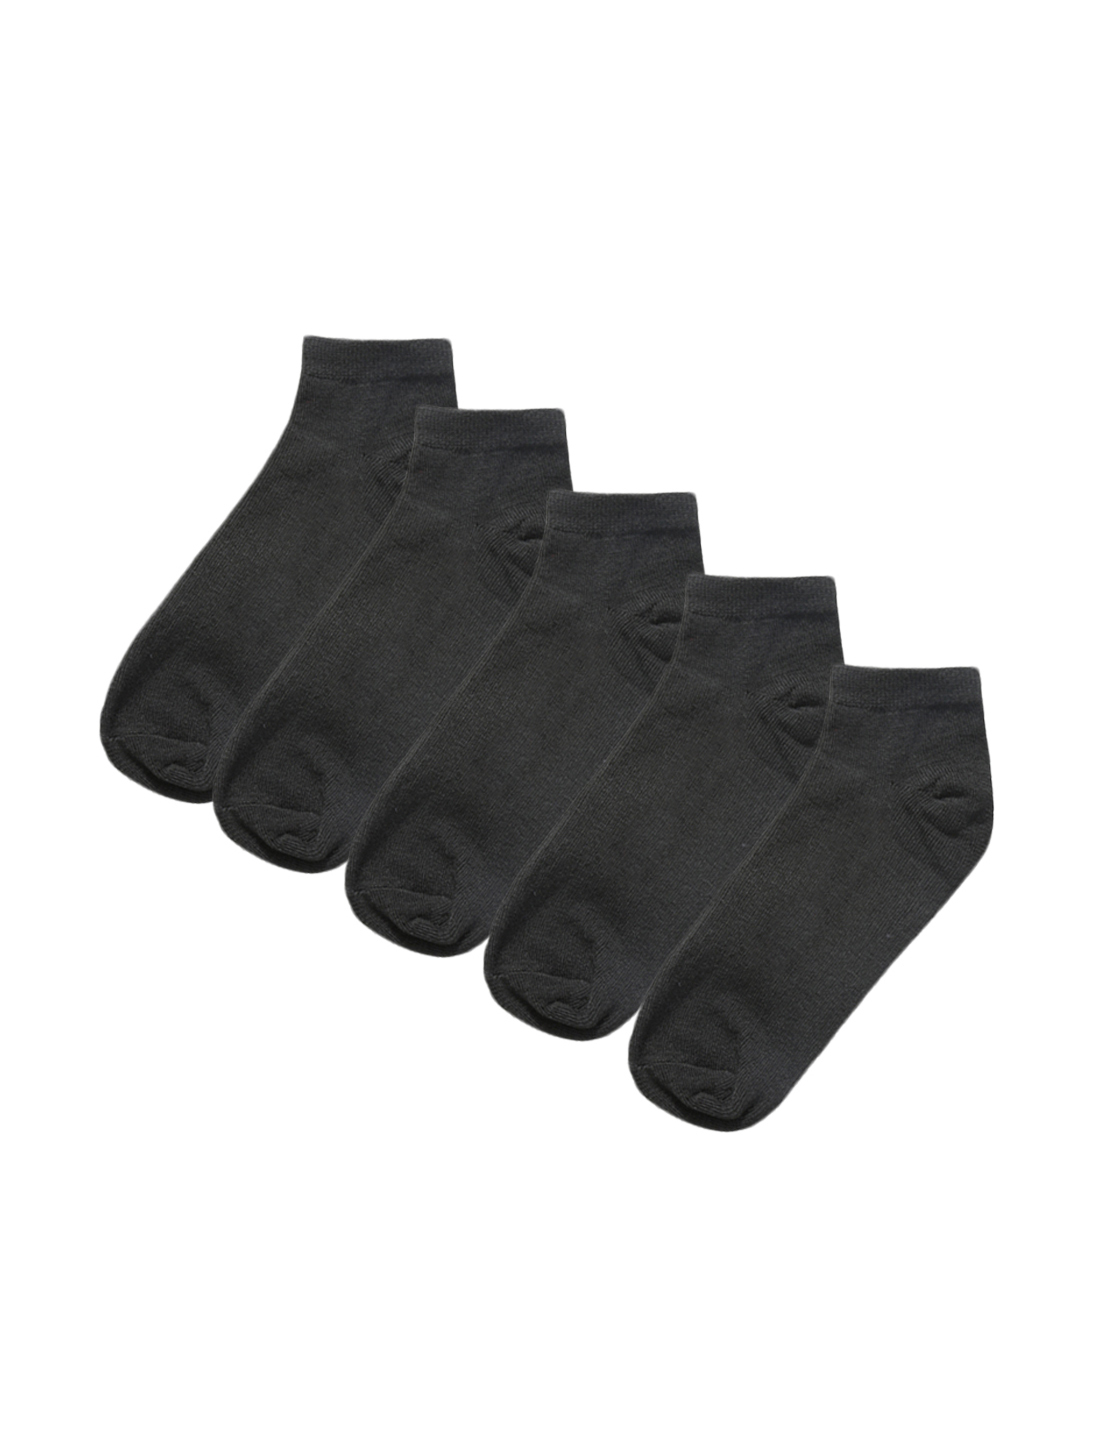 Athletic Low Cut Ankle Socks Elastic Cuff 5 Pairs Black M